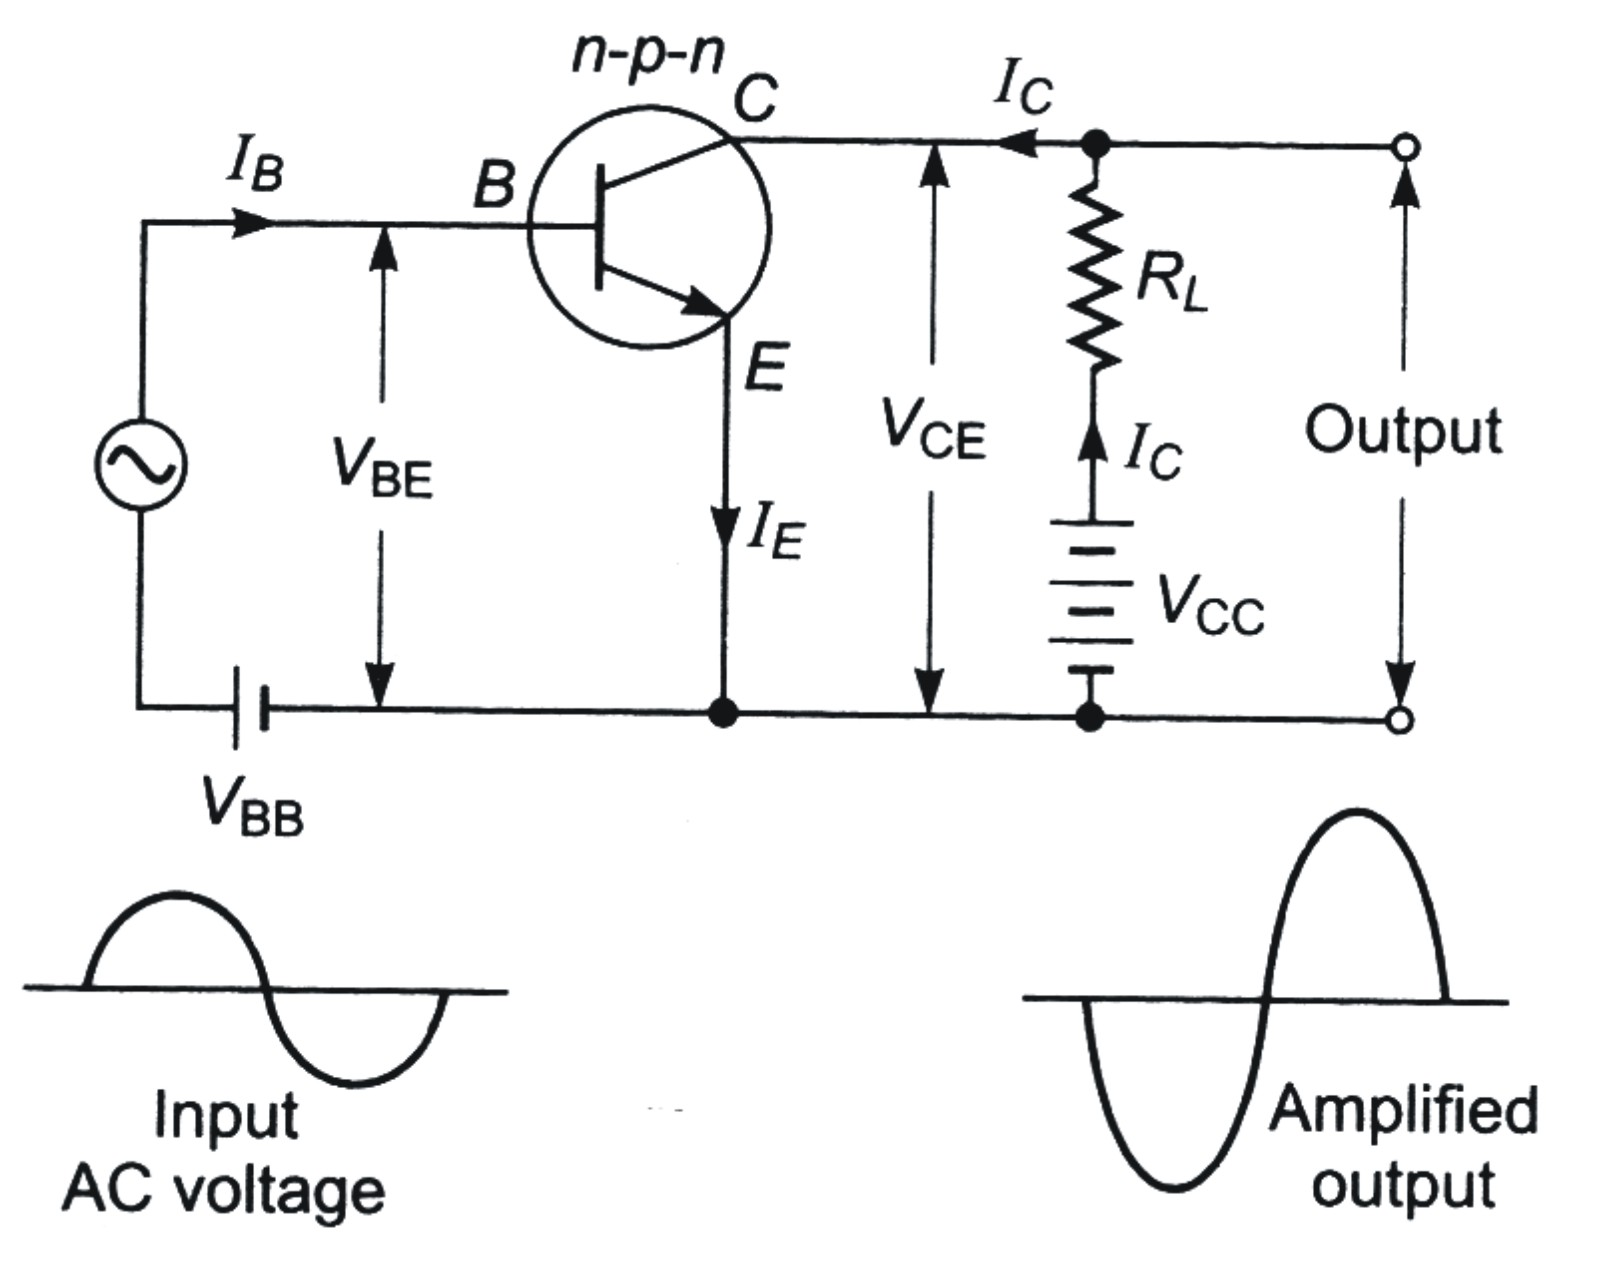 transistor as an amplifier circuit diagram  u2013 powerking co